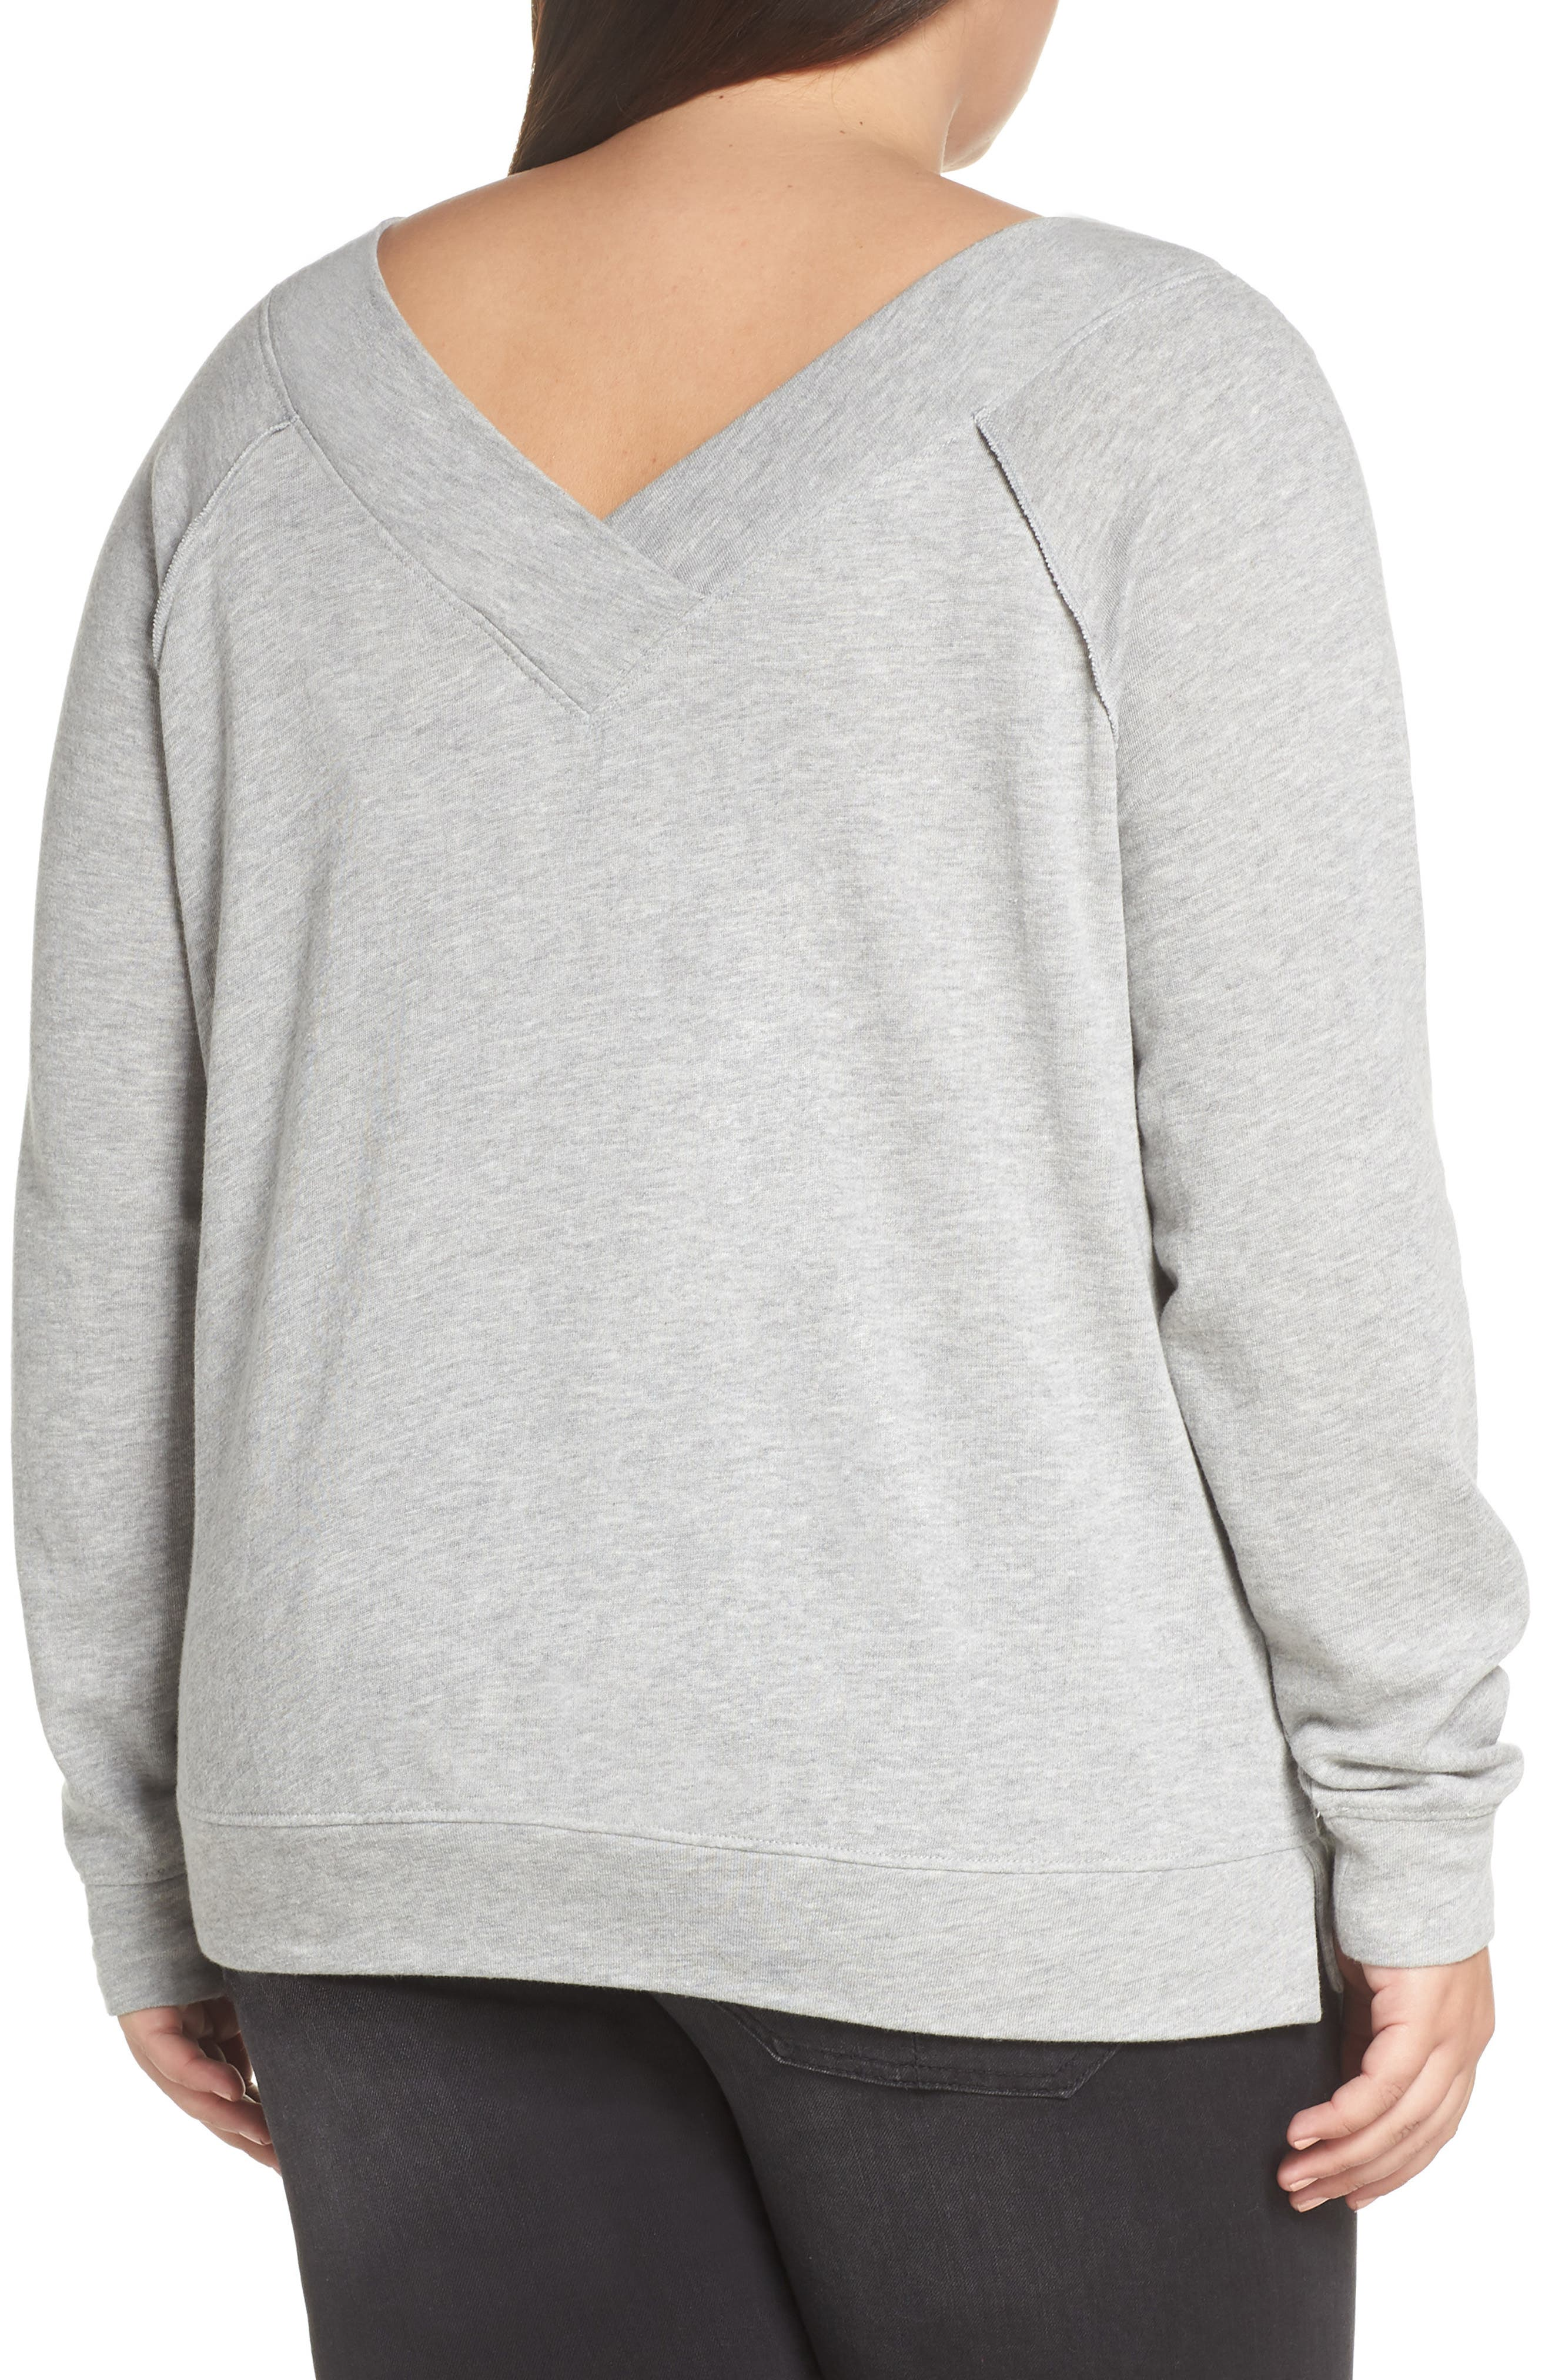 Double V-neck Sweatshirt,                             Alternate thumbnail 8, color,                             GREY PEARL HEATHER